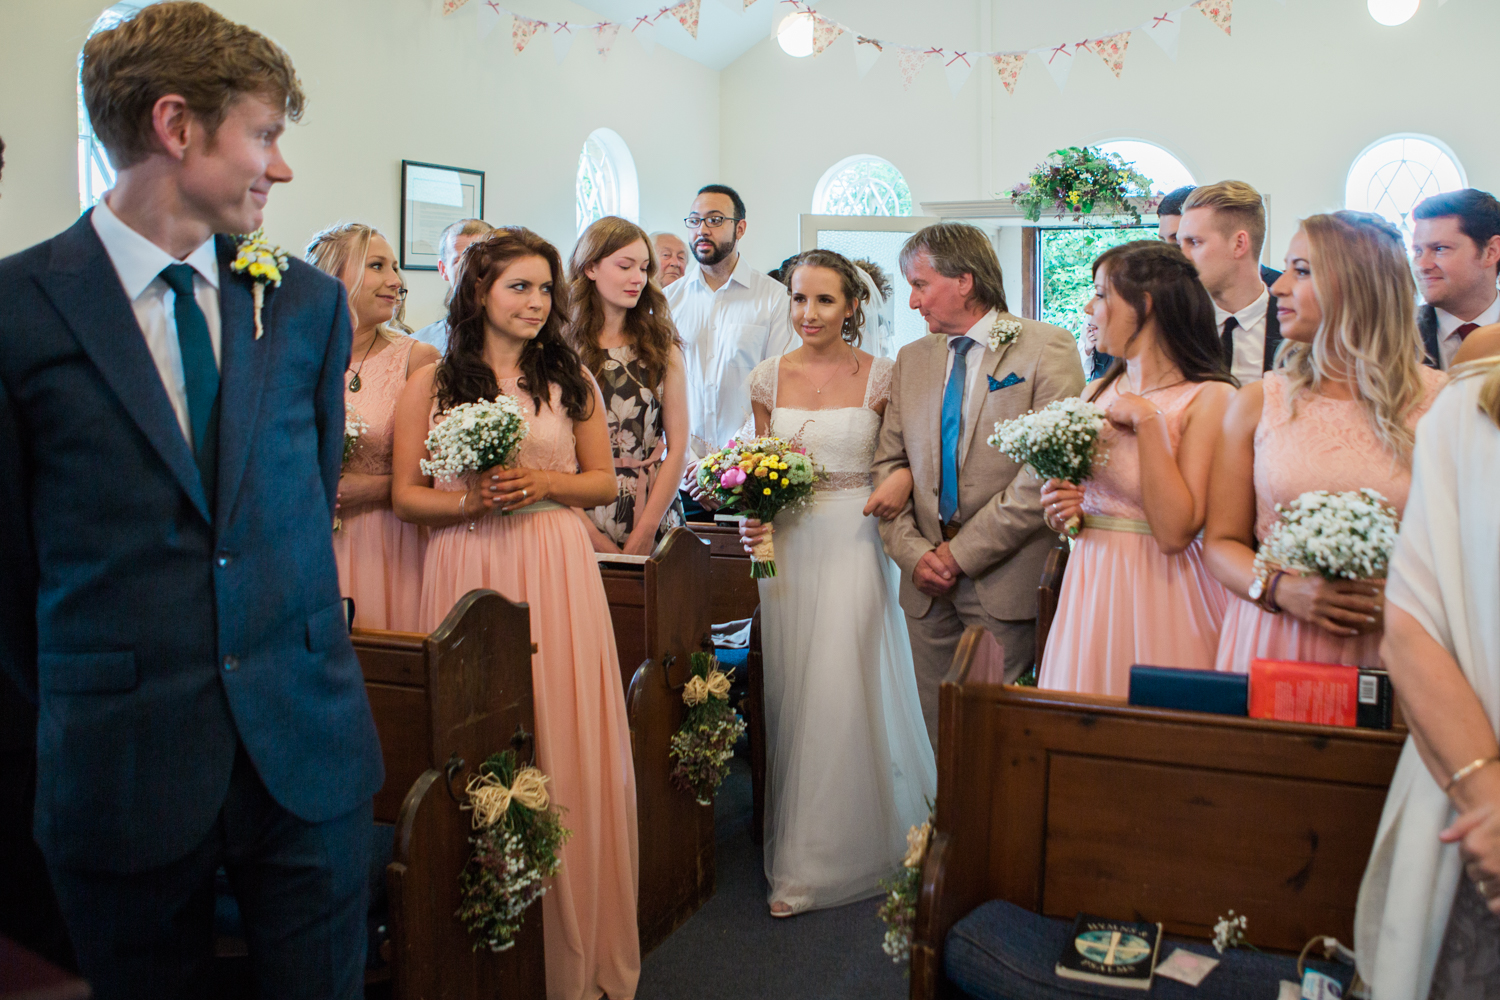 043Lotti & Dave marquee wedding Sophie Evans Photography West Midlands reportage wedding photography.jpg